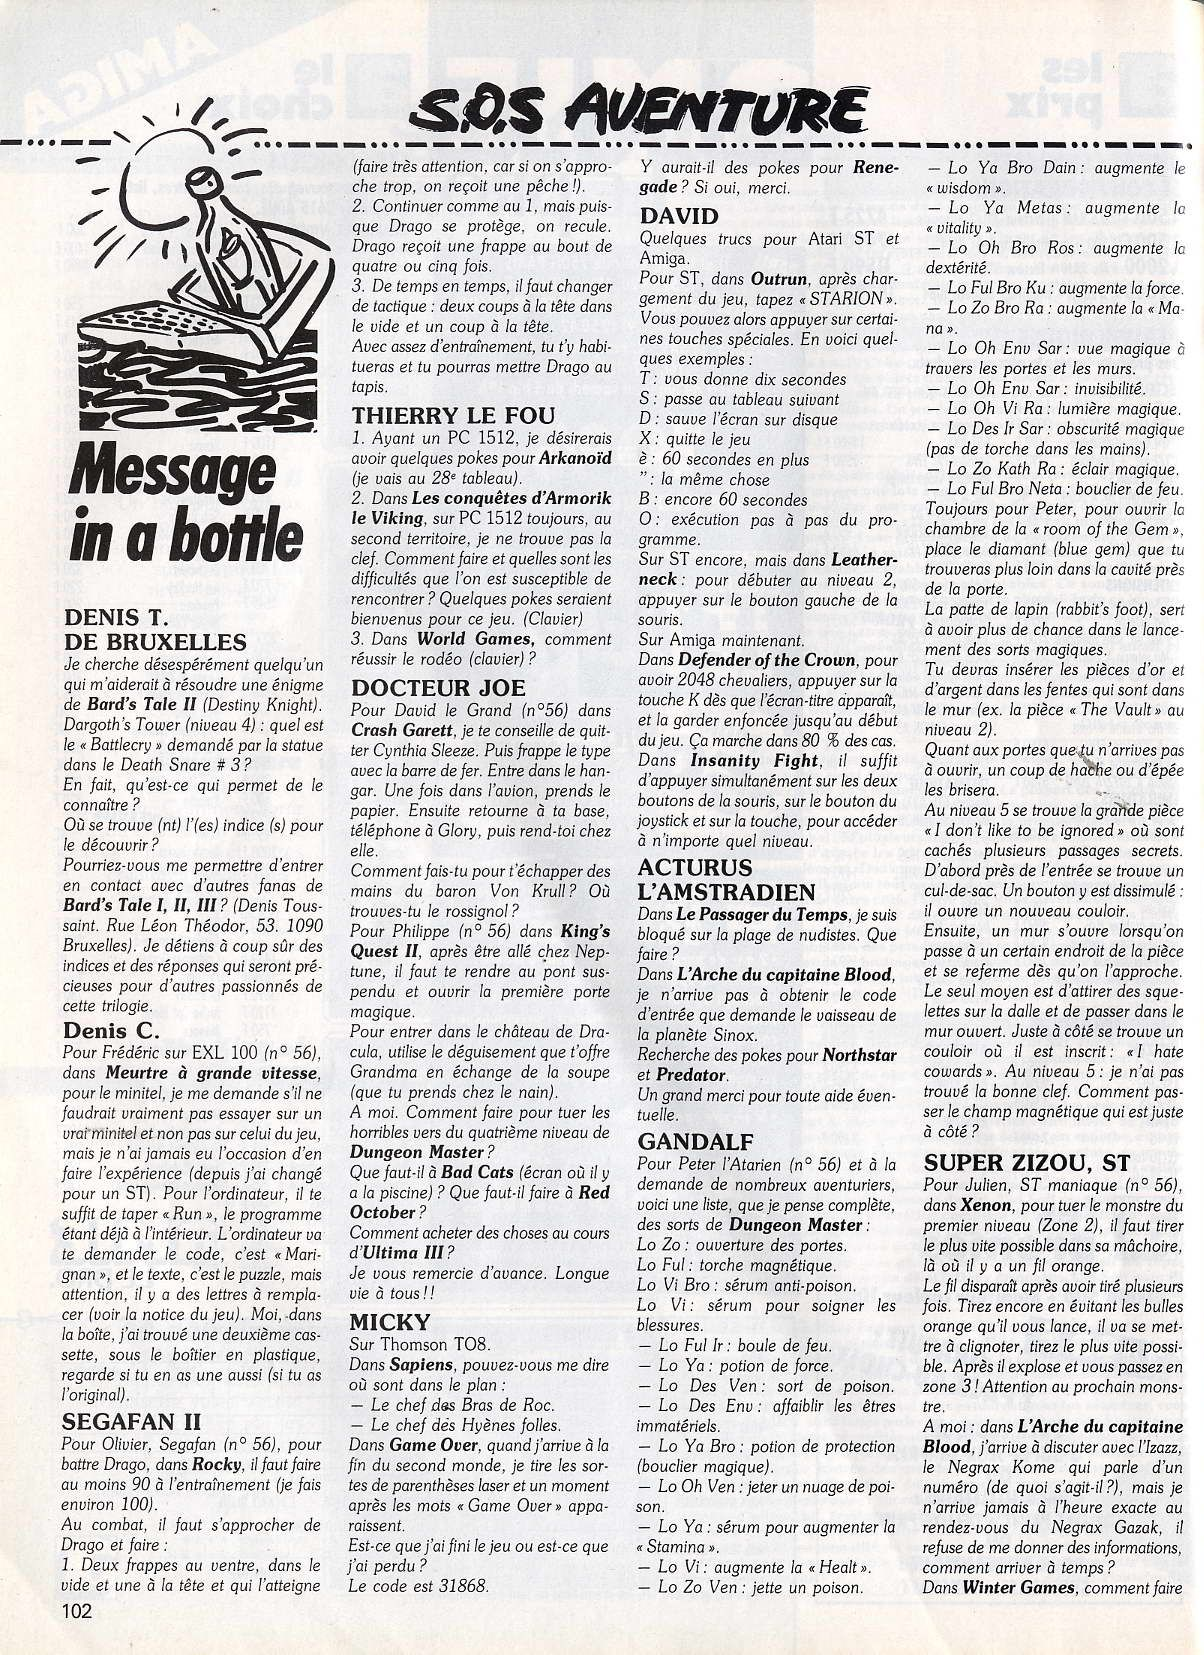 Dungeon Master Hints published in French magazine 'Tilt', Issue#58, October 1988, Page 102